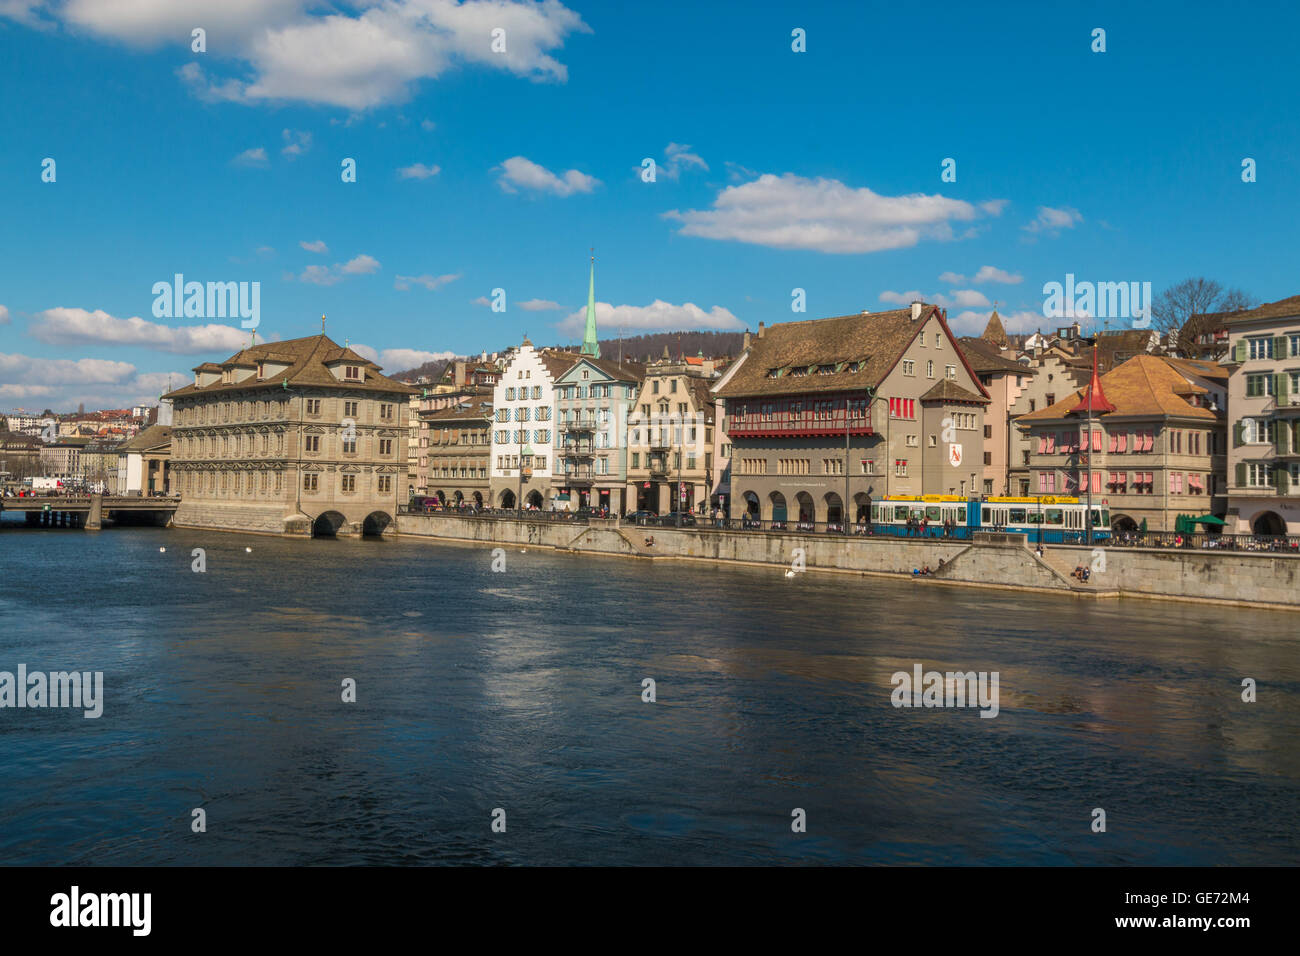 View of Zurich city - Stock Image